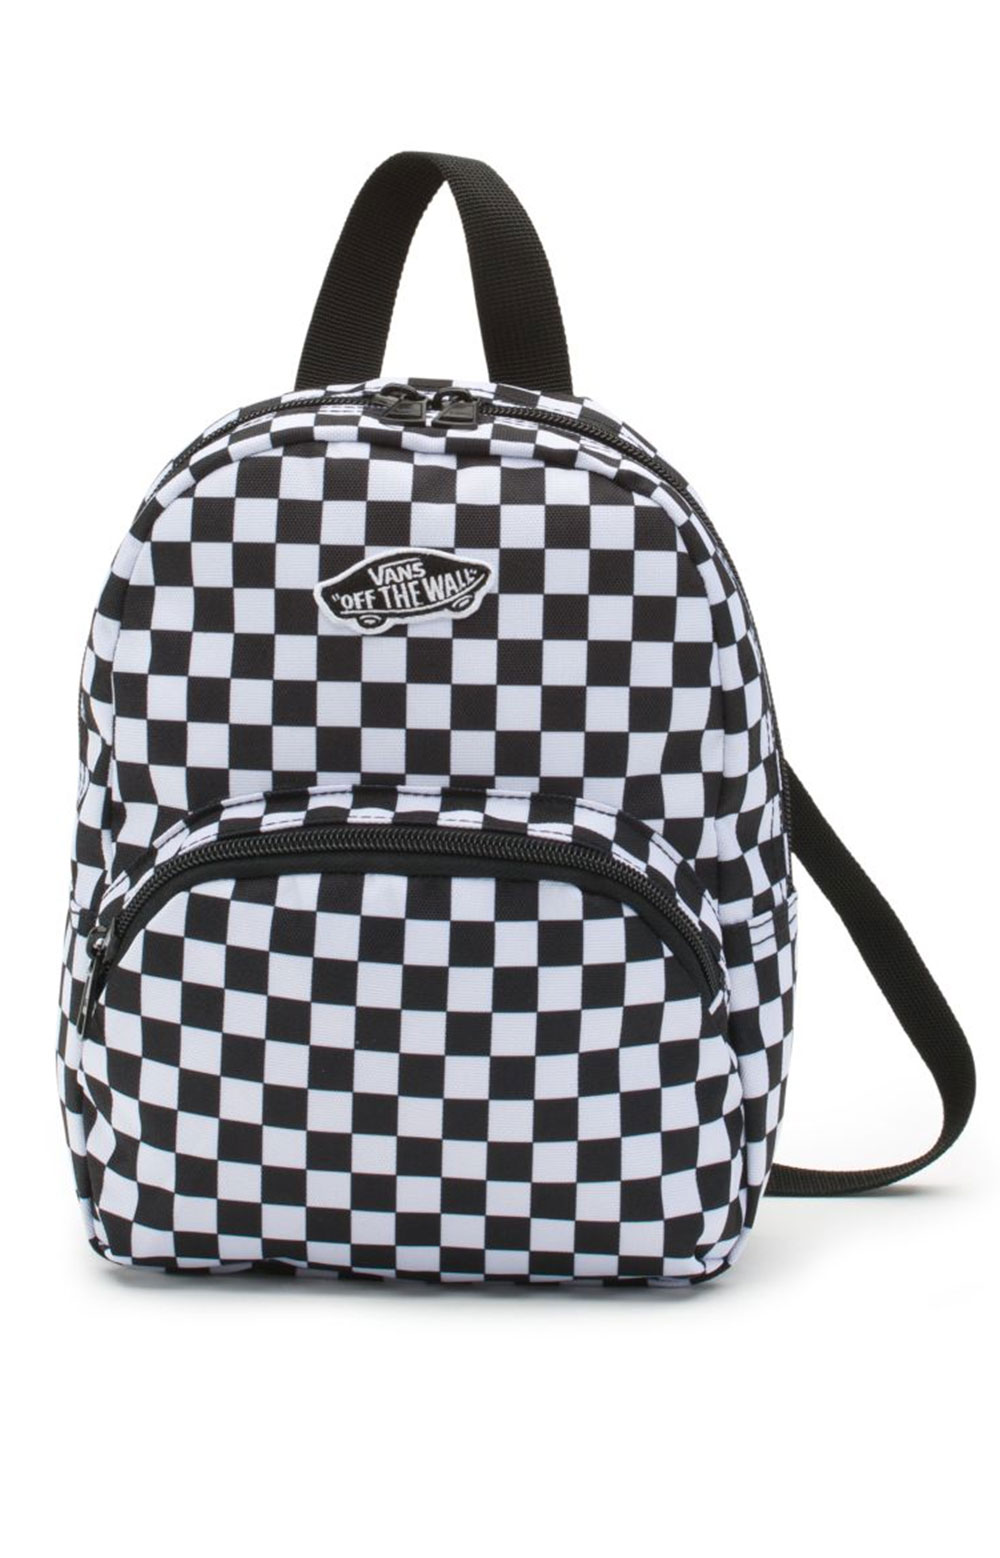 Got This Mini Backpack - Black/White Checker